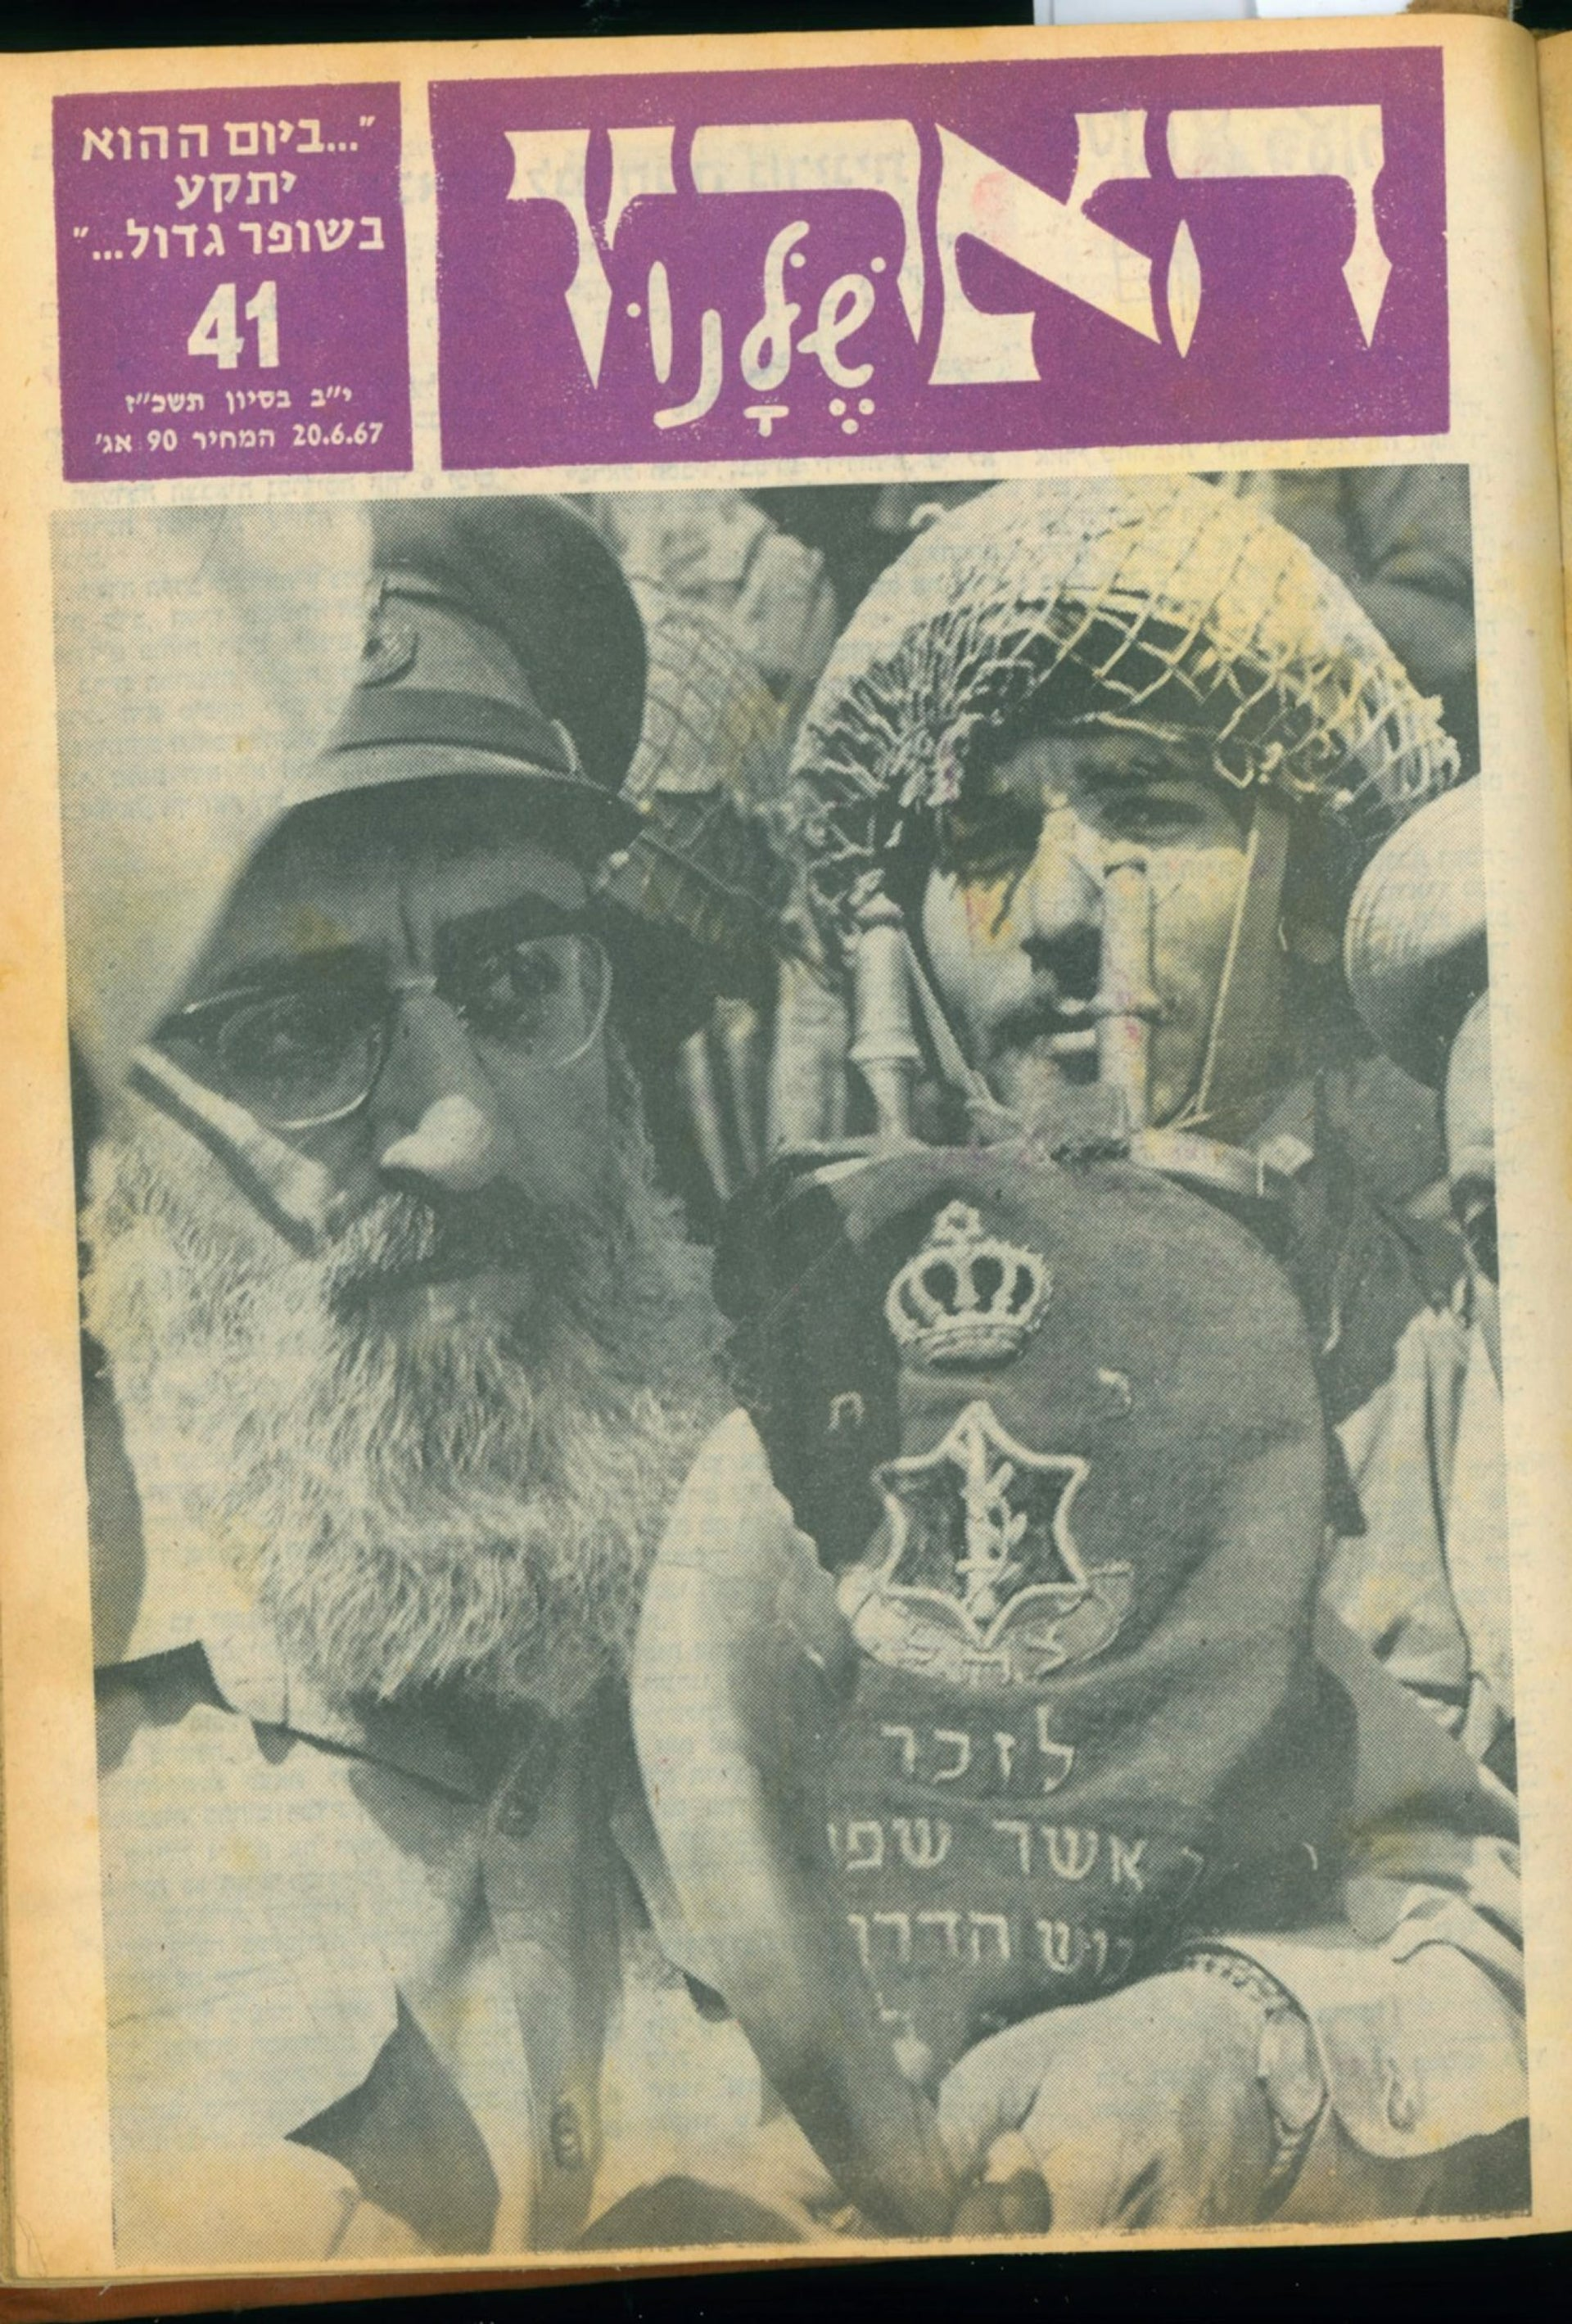 The cover of issue 41 of Haaretz Shelanu from 1967.